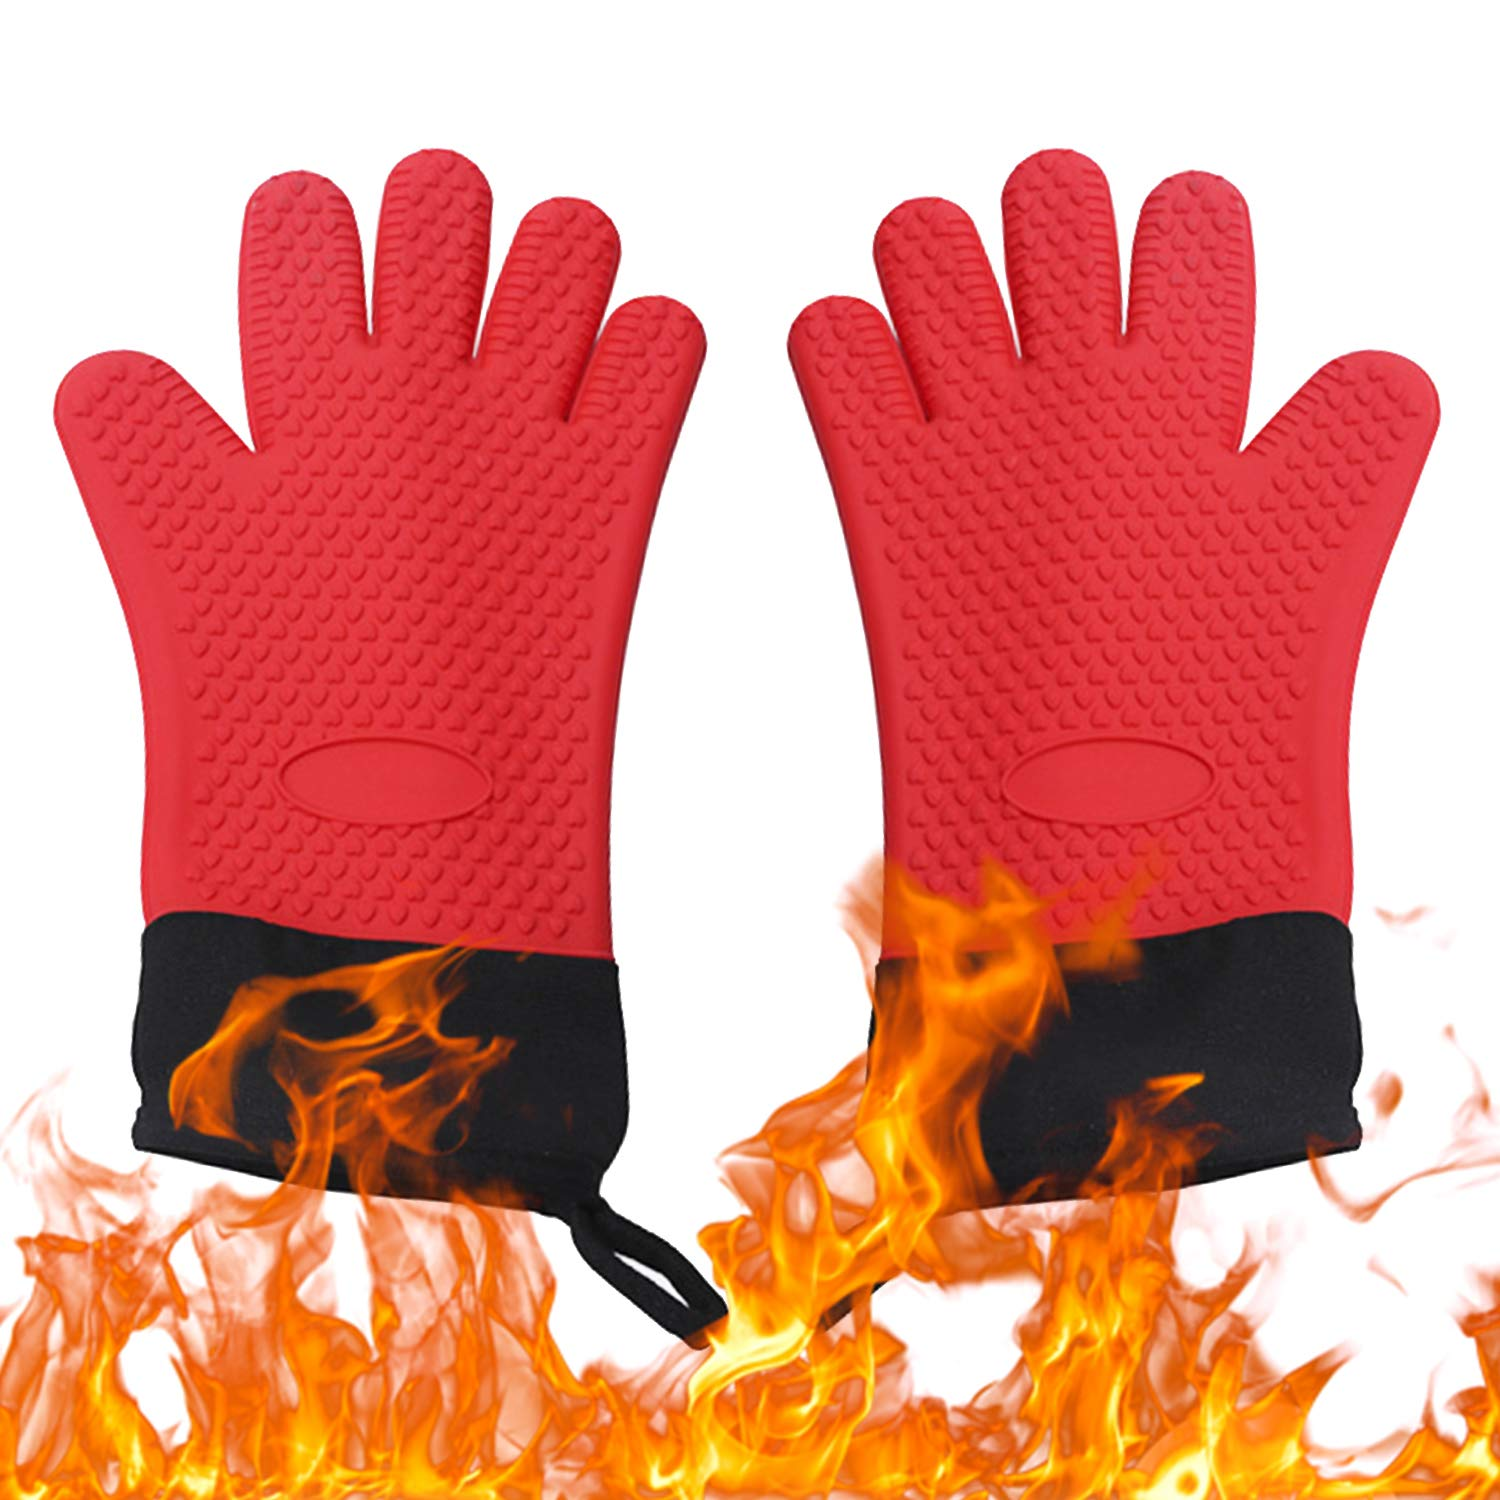 Y-LIFE Silicone Oven Mitts with Heat-Resistant and Double Thickening, Silicone Non Slip Texture Oven Mitts, Professional Heat Resistant Kitchen Cooking Mitts, Red, Set of 2